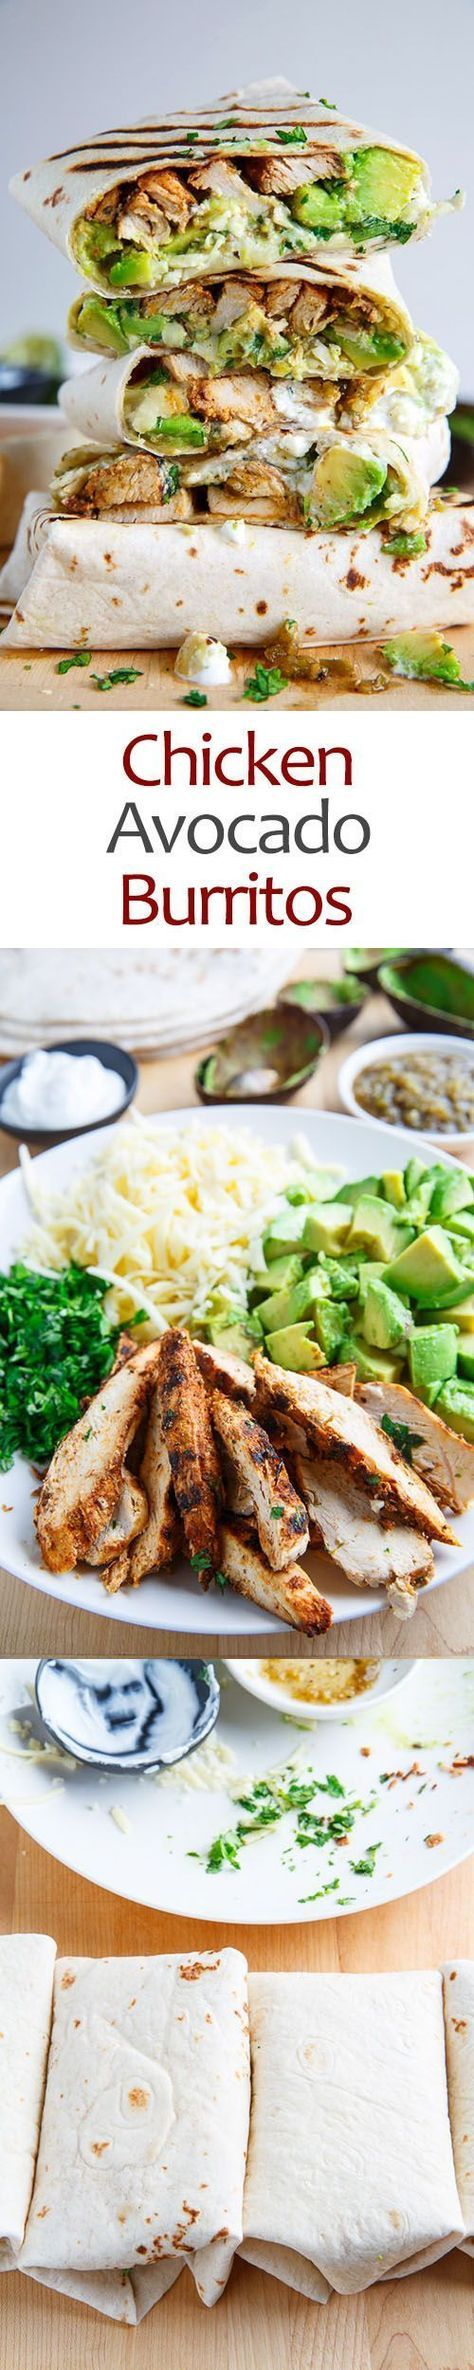 An avocado and chicken burrito sounds good right about now. For healthy recipe ideas, visit the compounding pharmacy Studio City website.